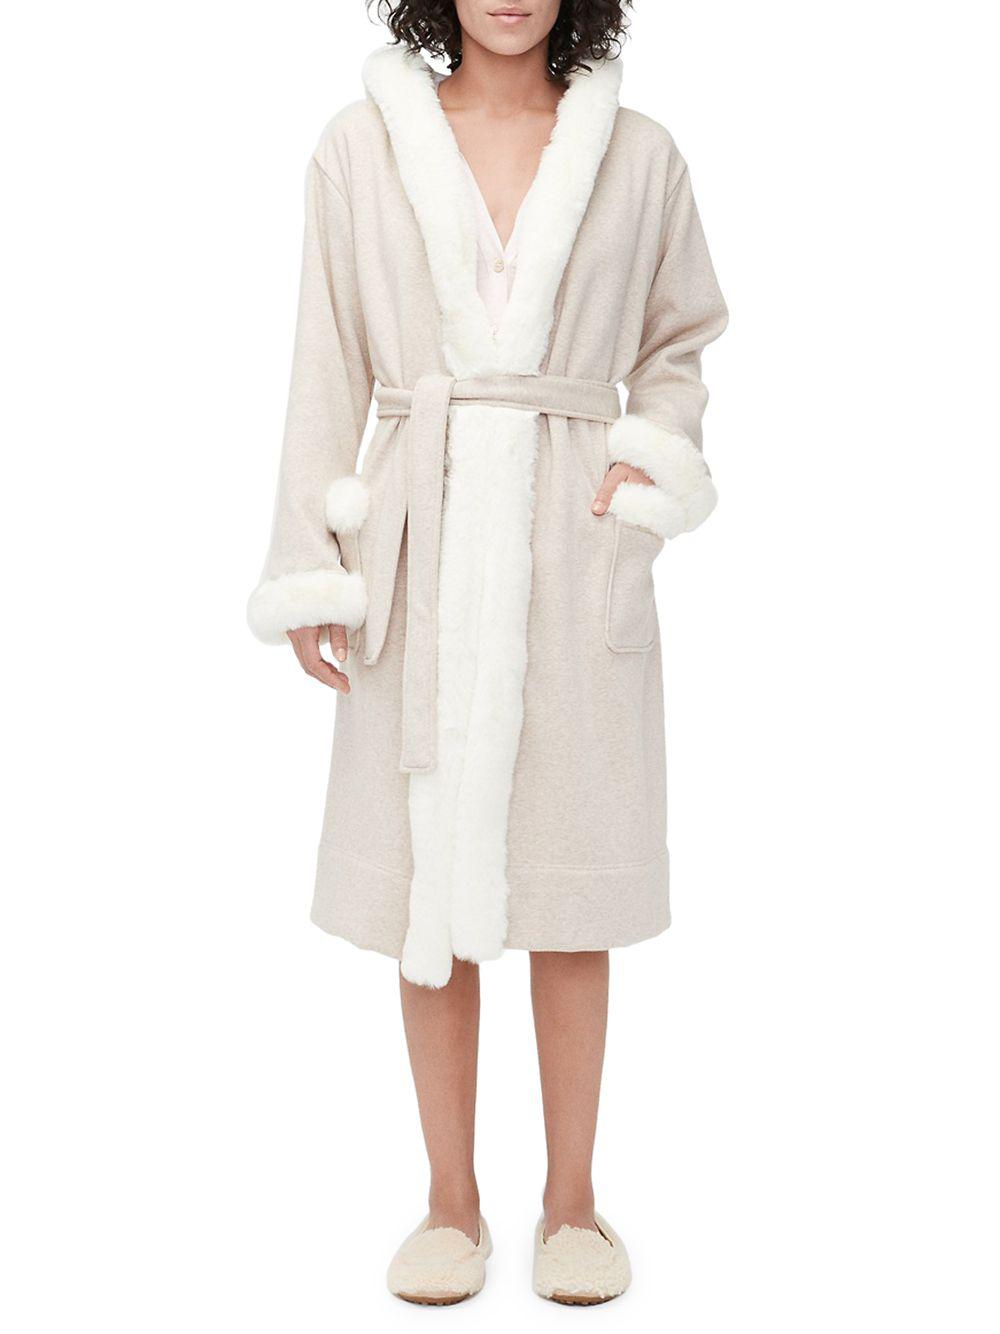 Lyst - Ugg Duffield Deluxe Faux-fur Trim Long Robe in Natural e04611242